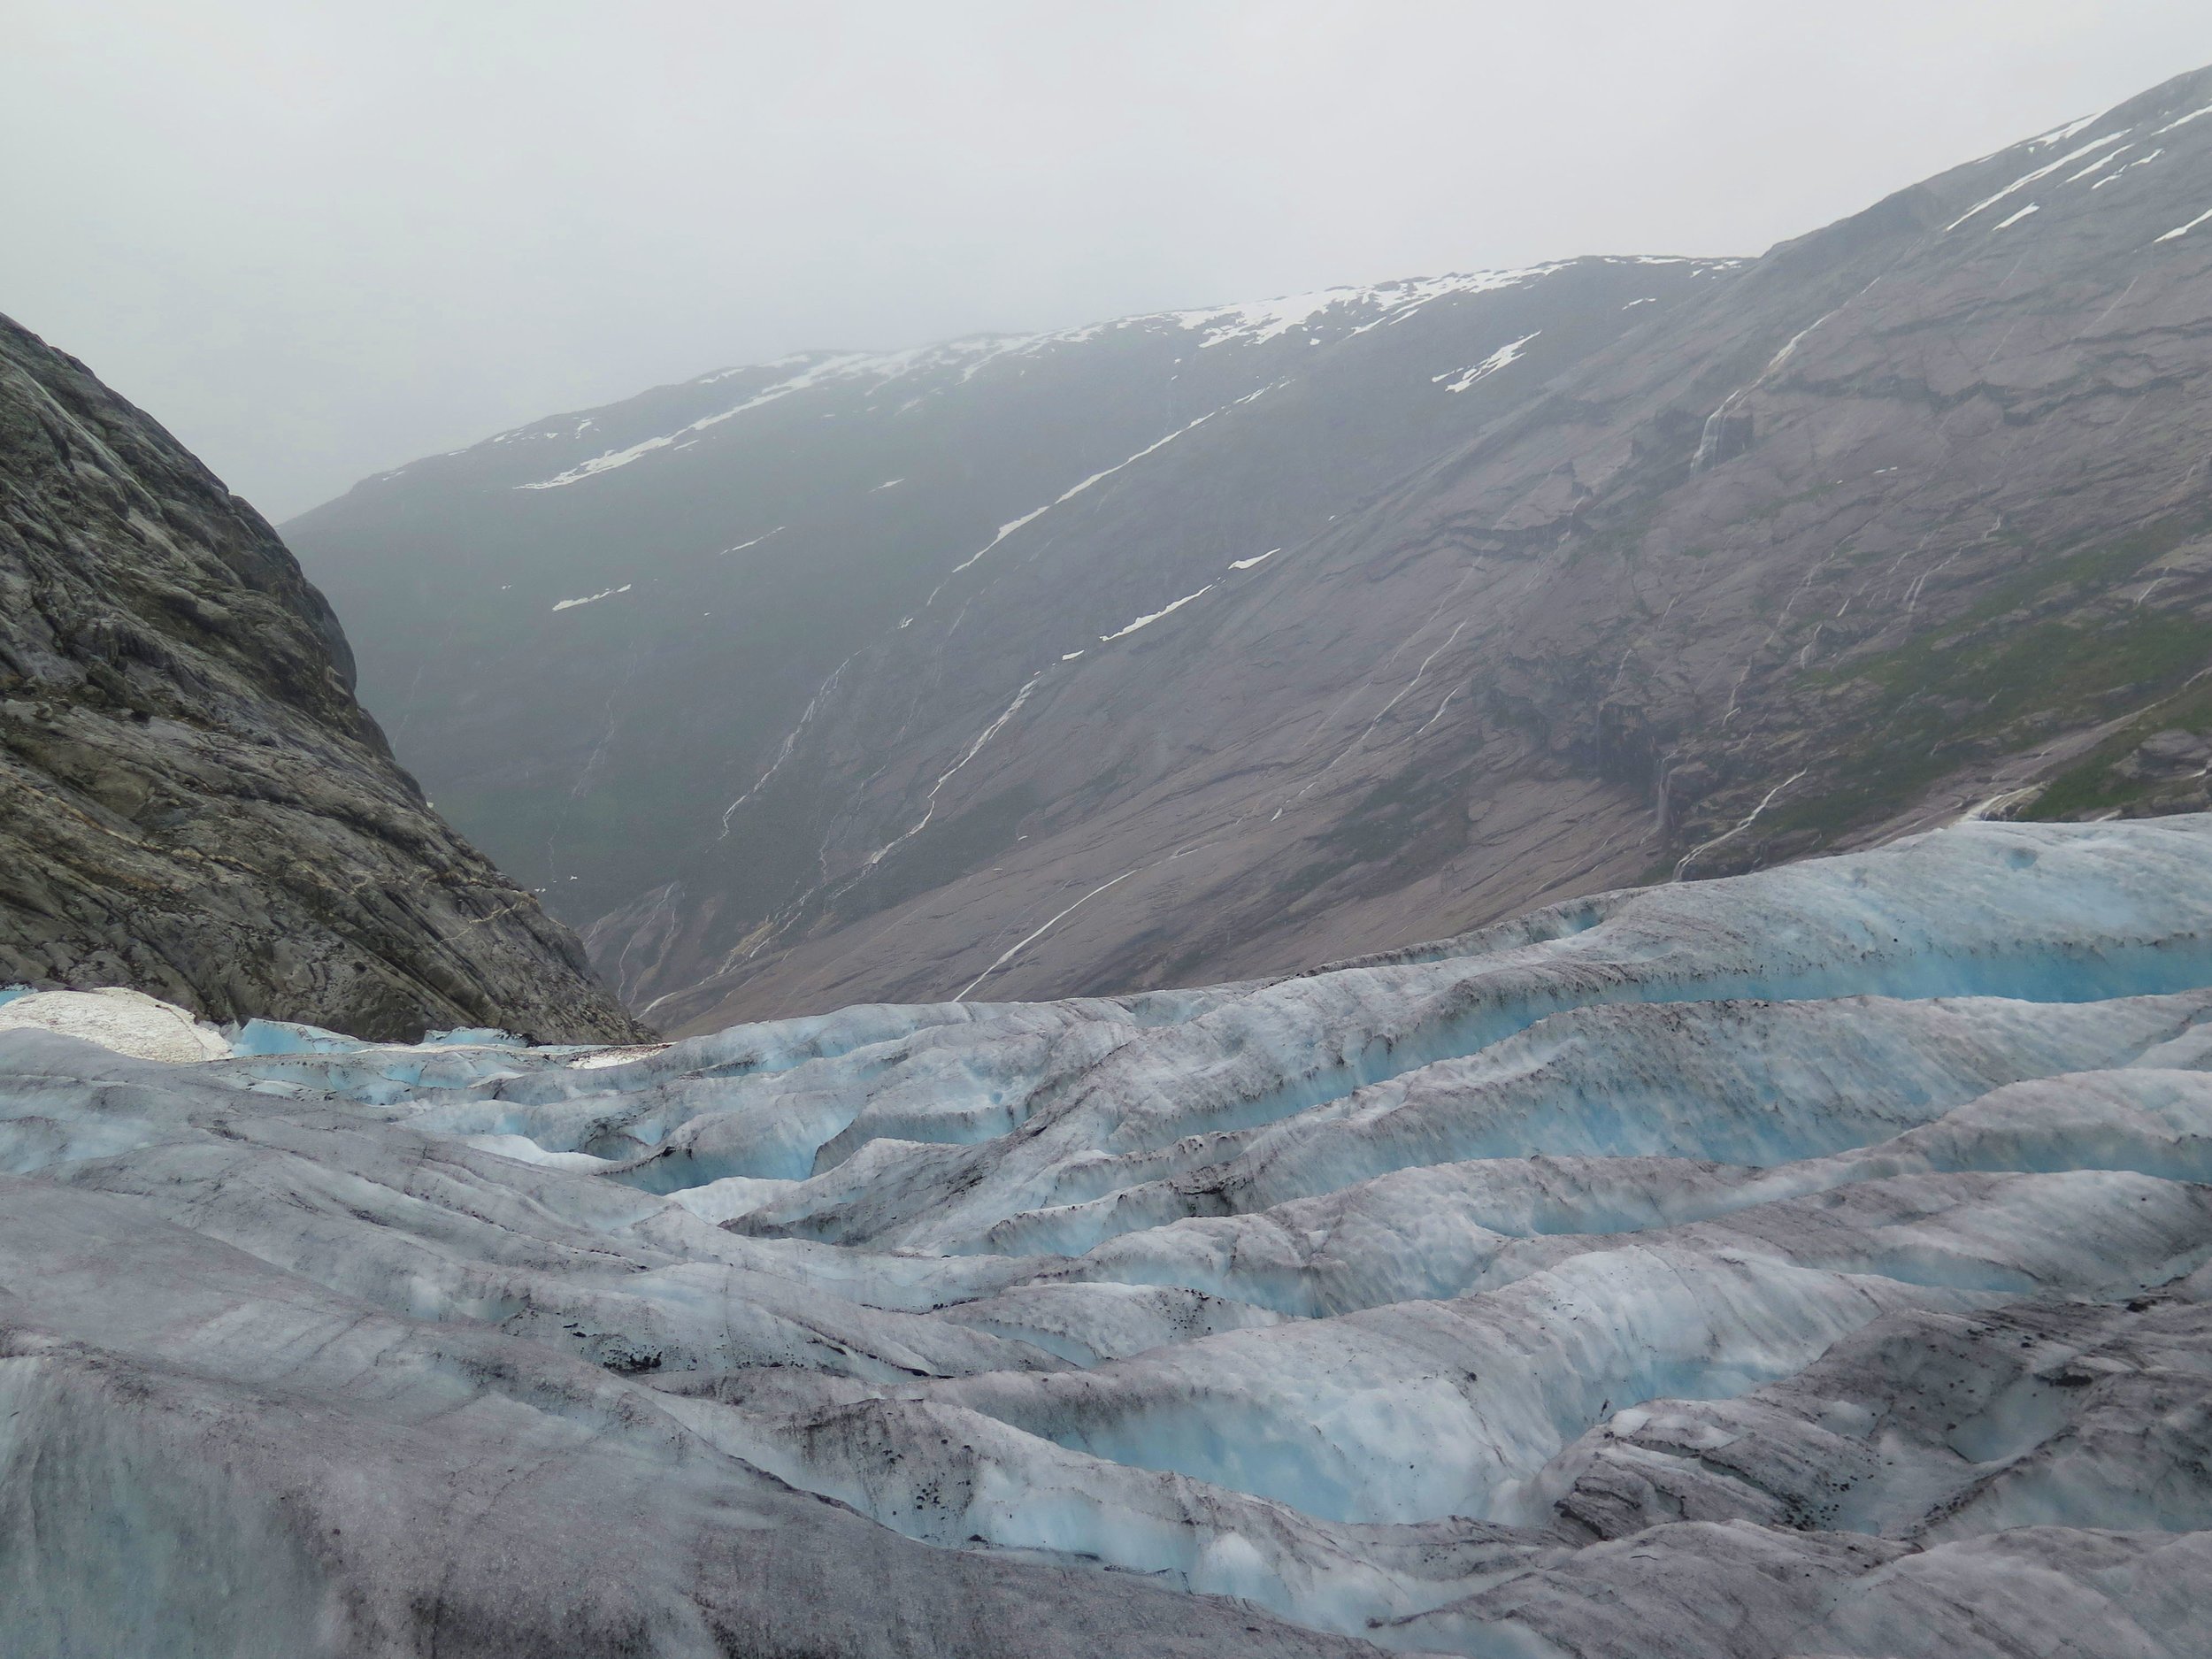 the daunting landscape of a glacier